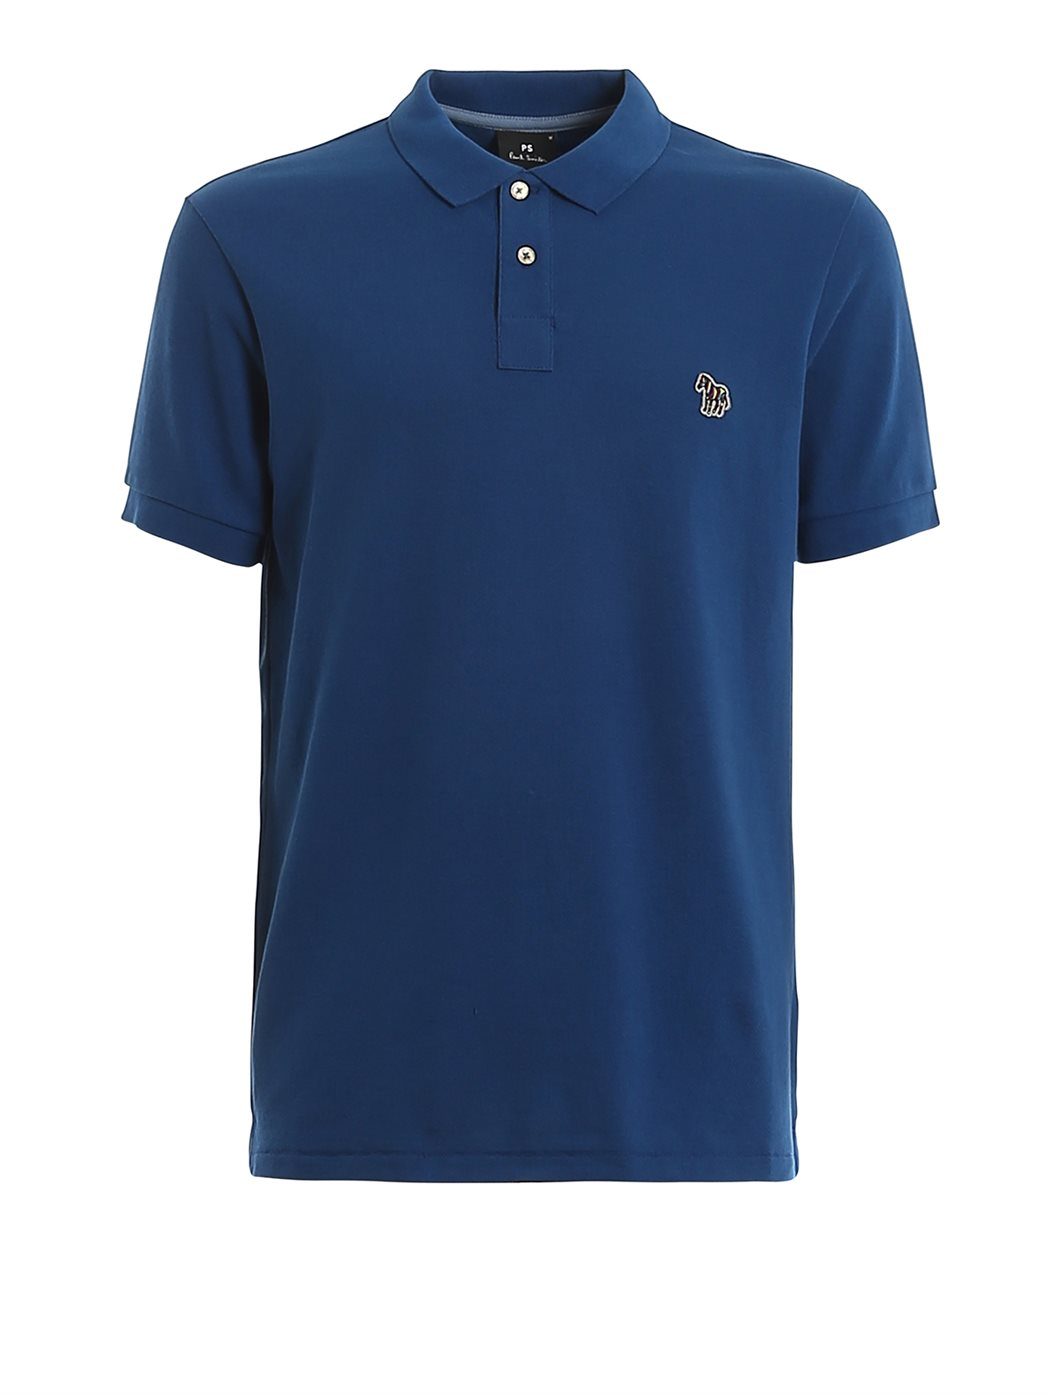 PAUL SMITH M2R-534LZ 46A POLO